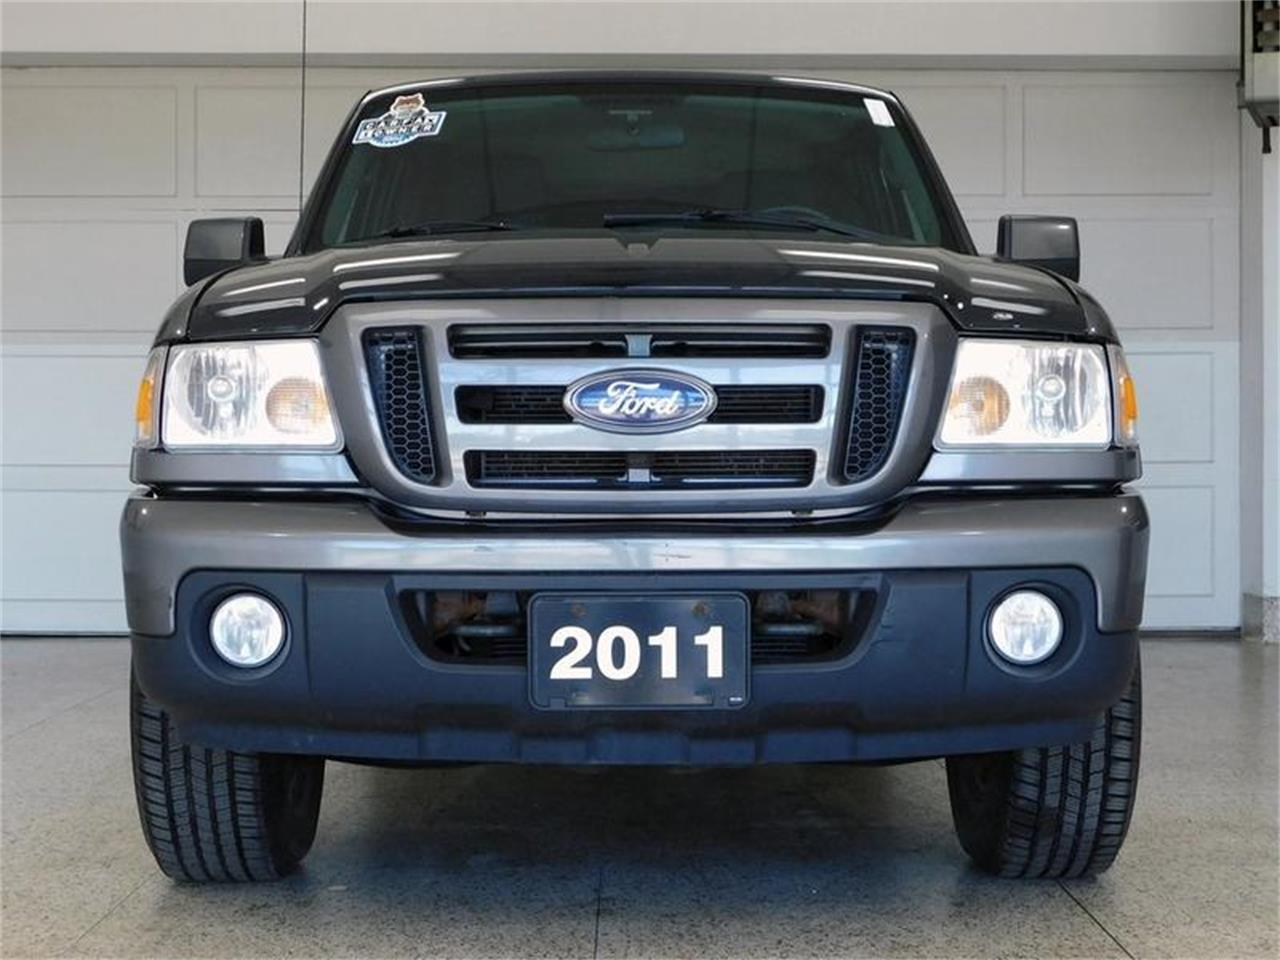 Large Picture of '11 Ford Ranger - $16,977.00 - Q0A9